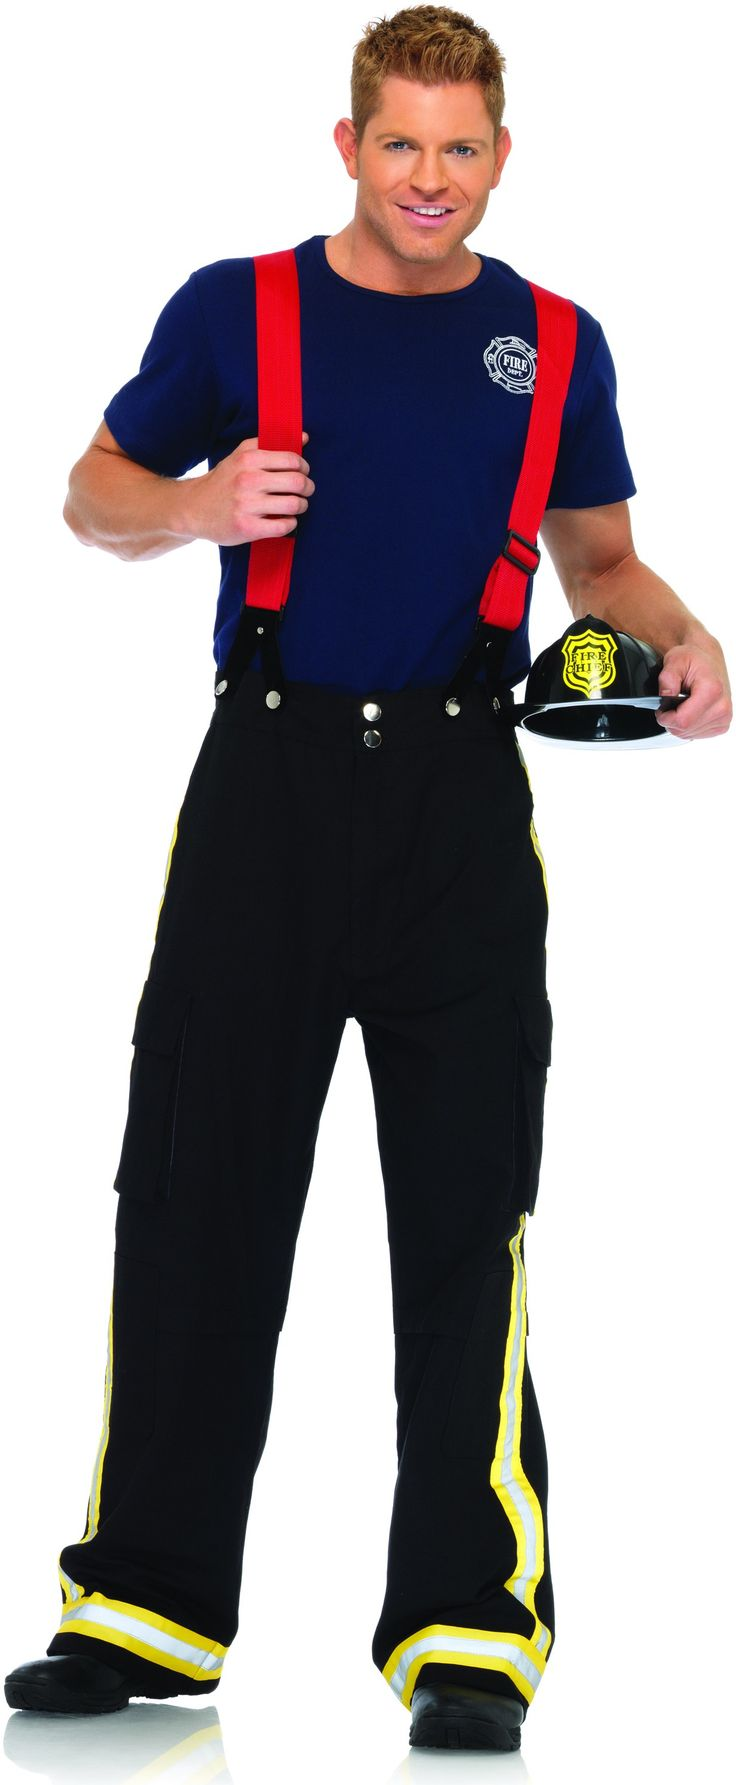 15 Best Adult Baby Costumes images  Adult baby costume